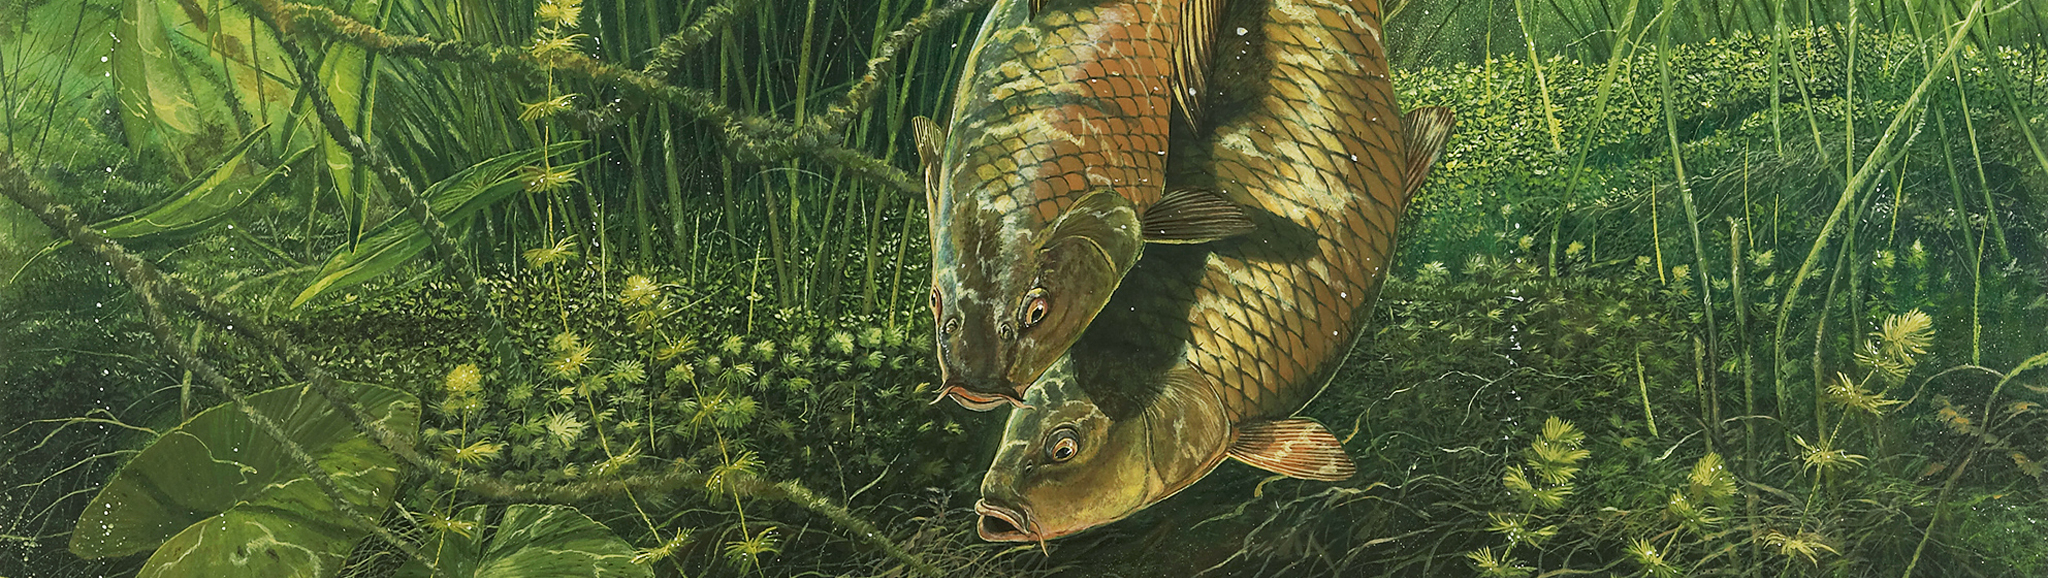 how to tell if carp are spawning